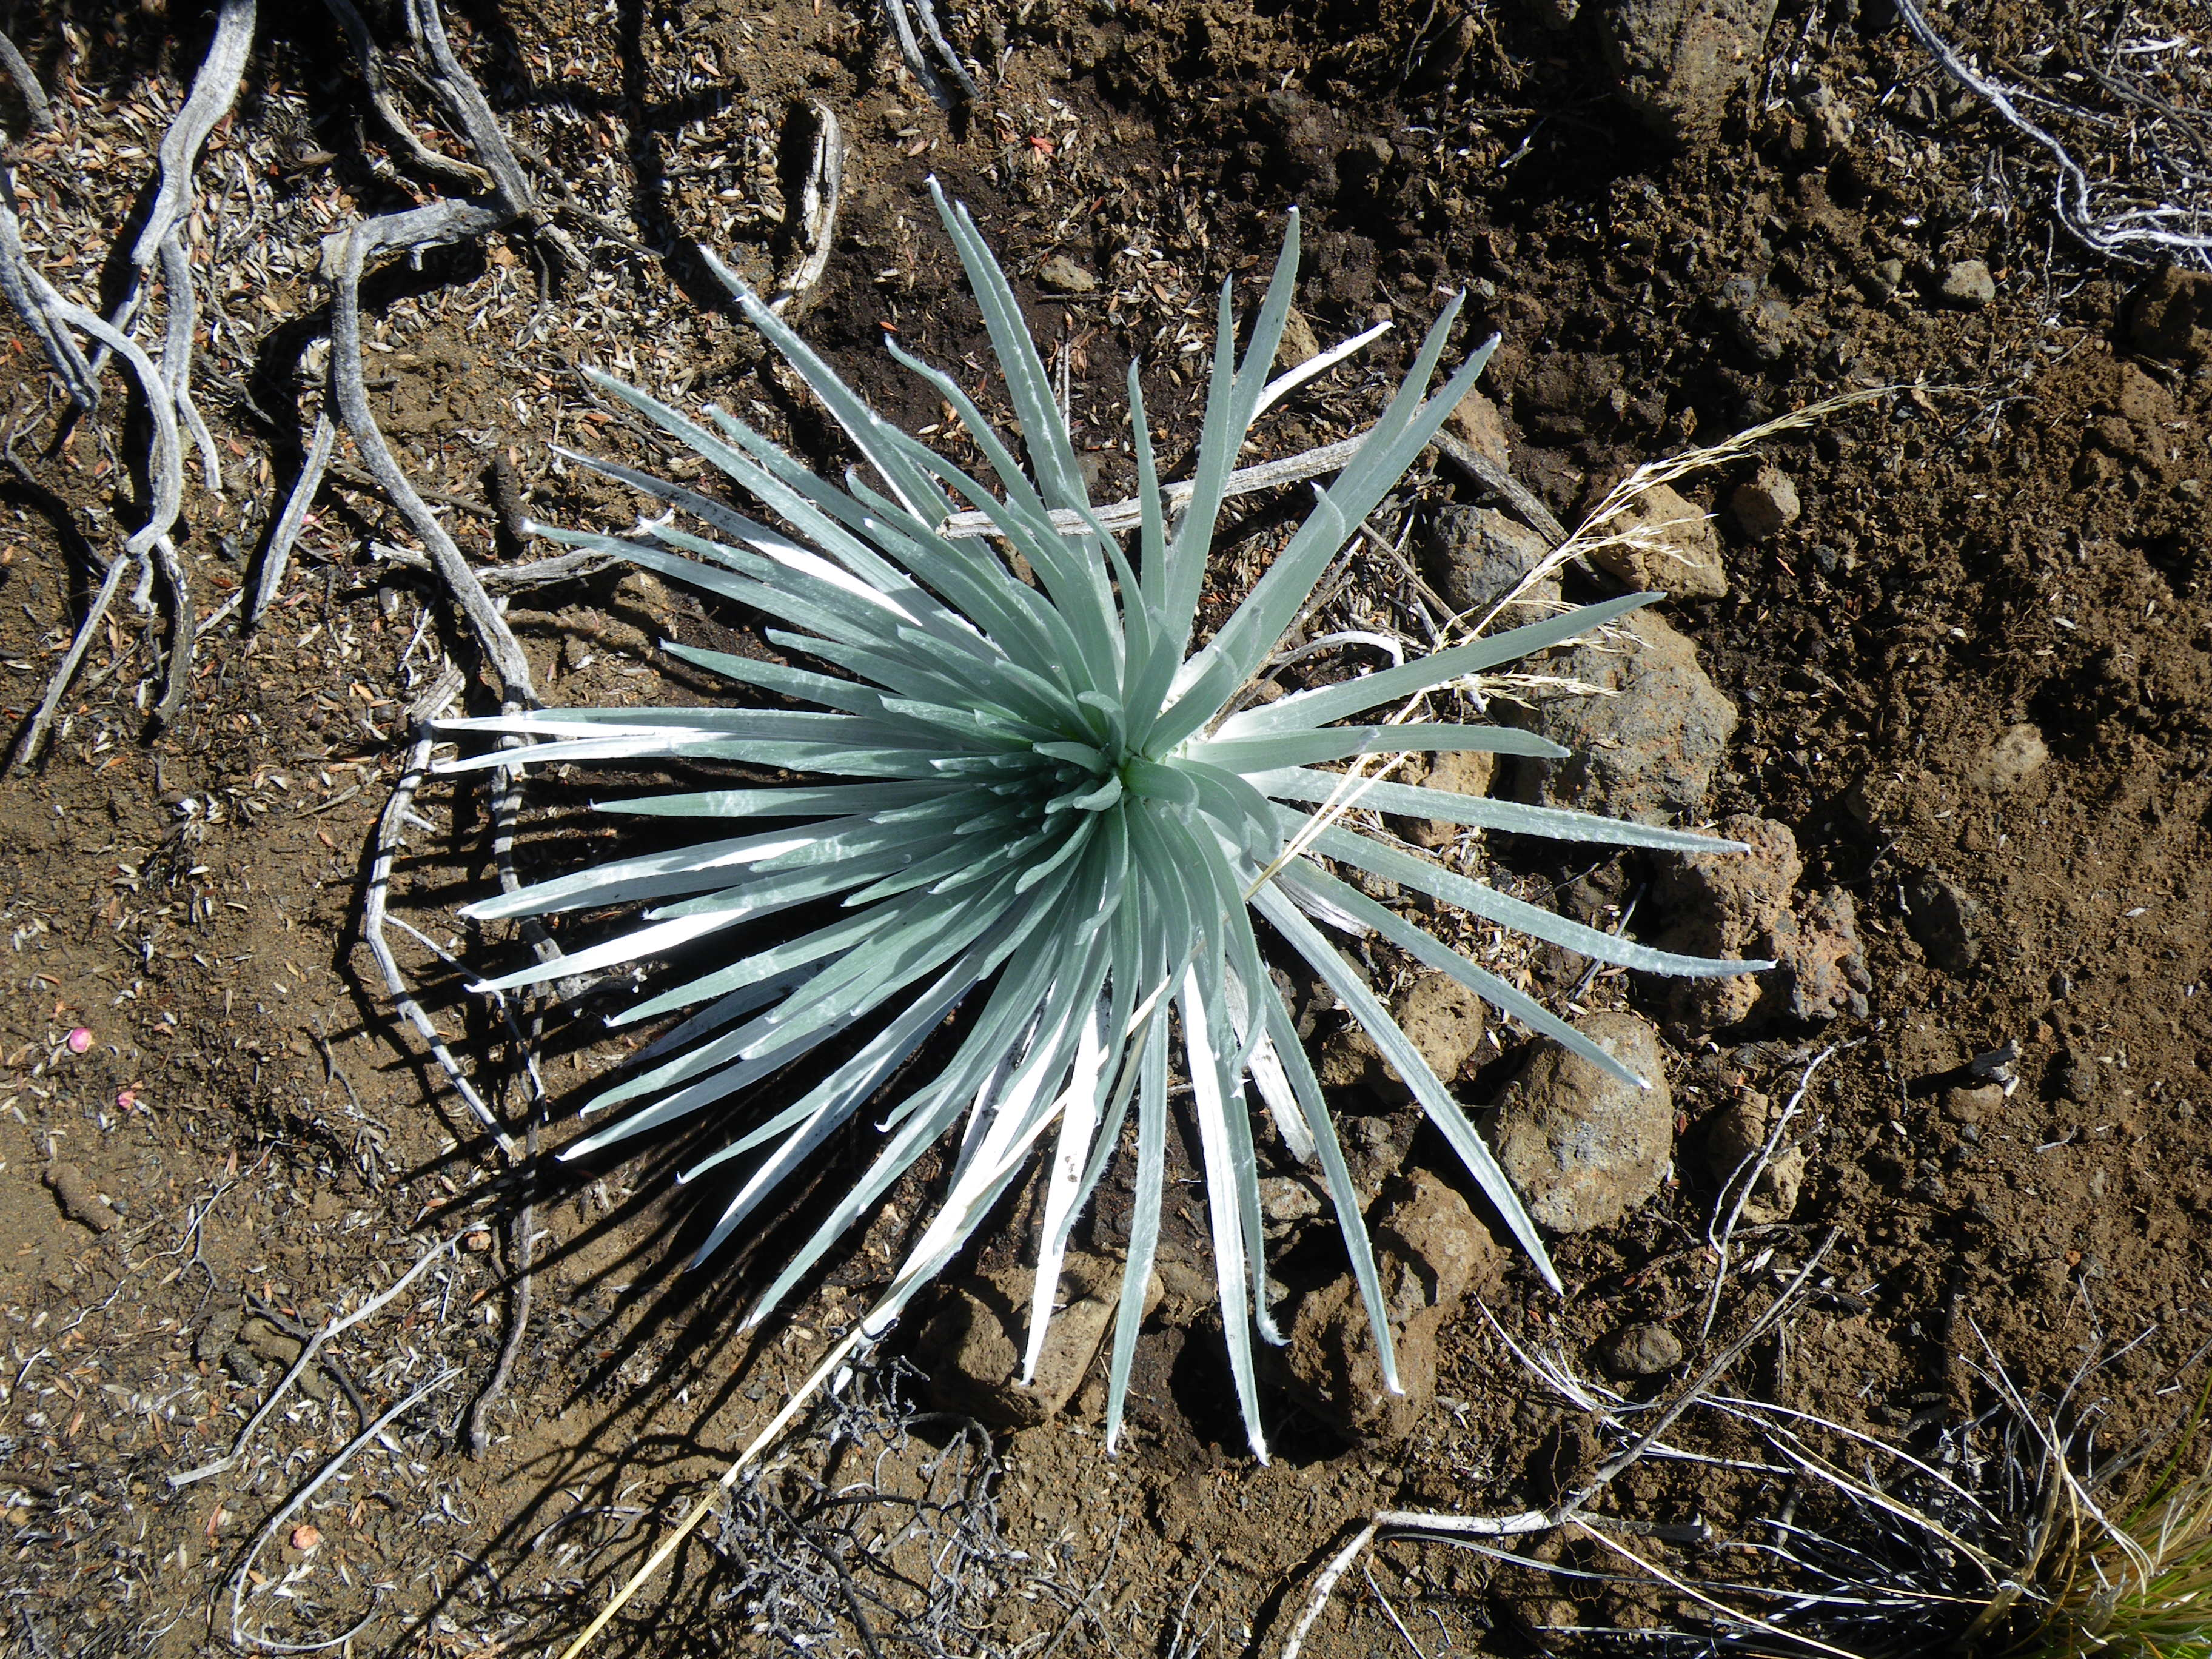 Haleakalā National Park Rangers Recover Poached Silverswords